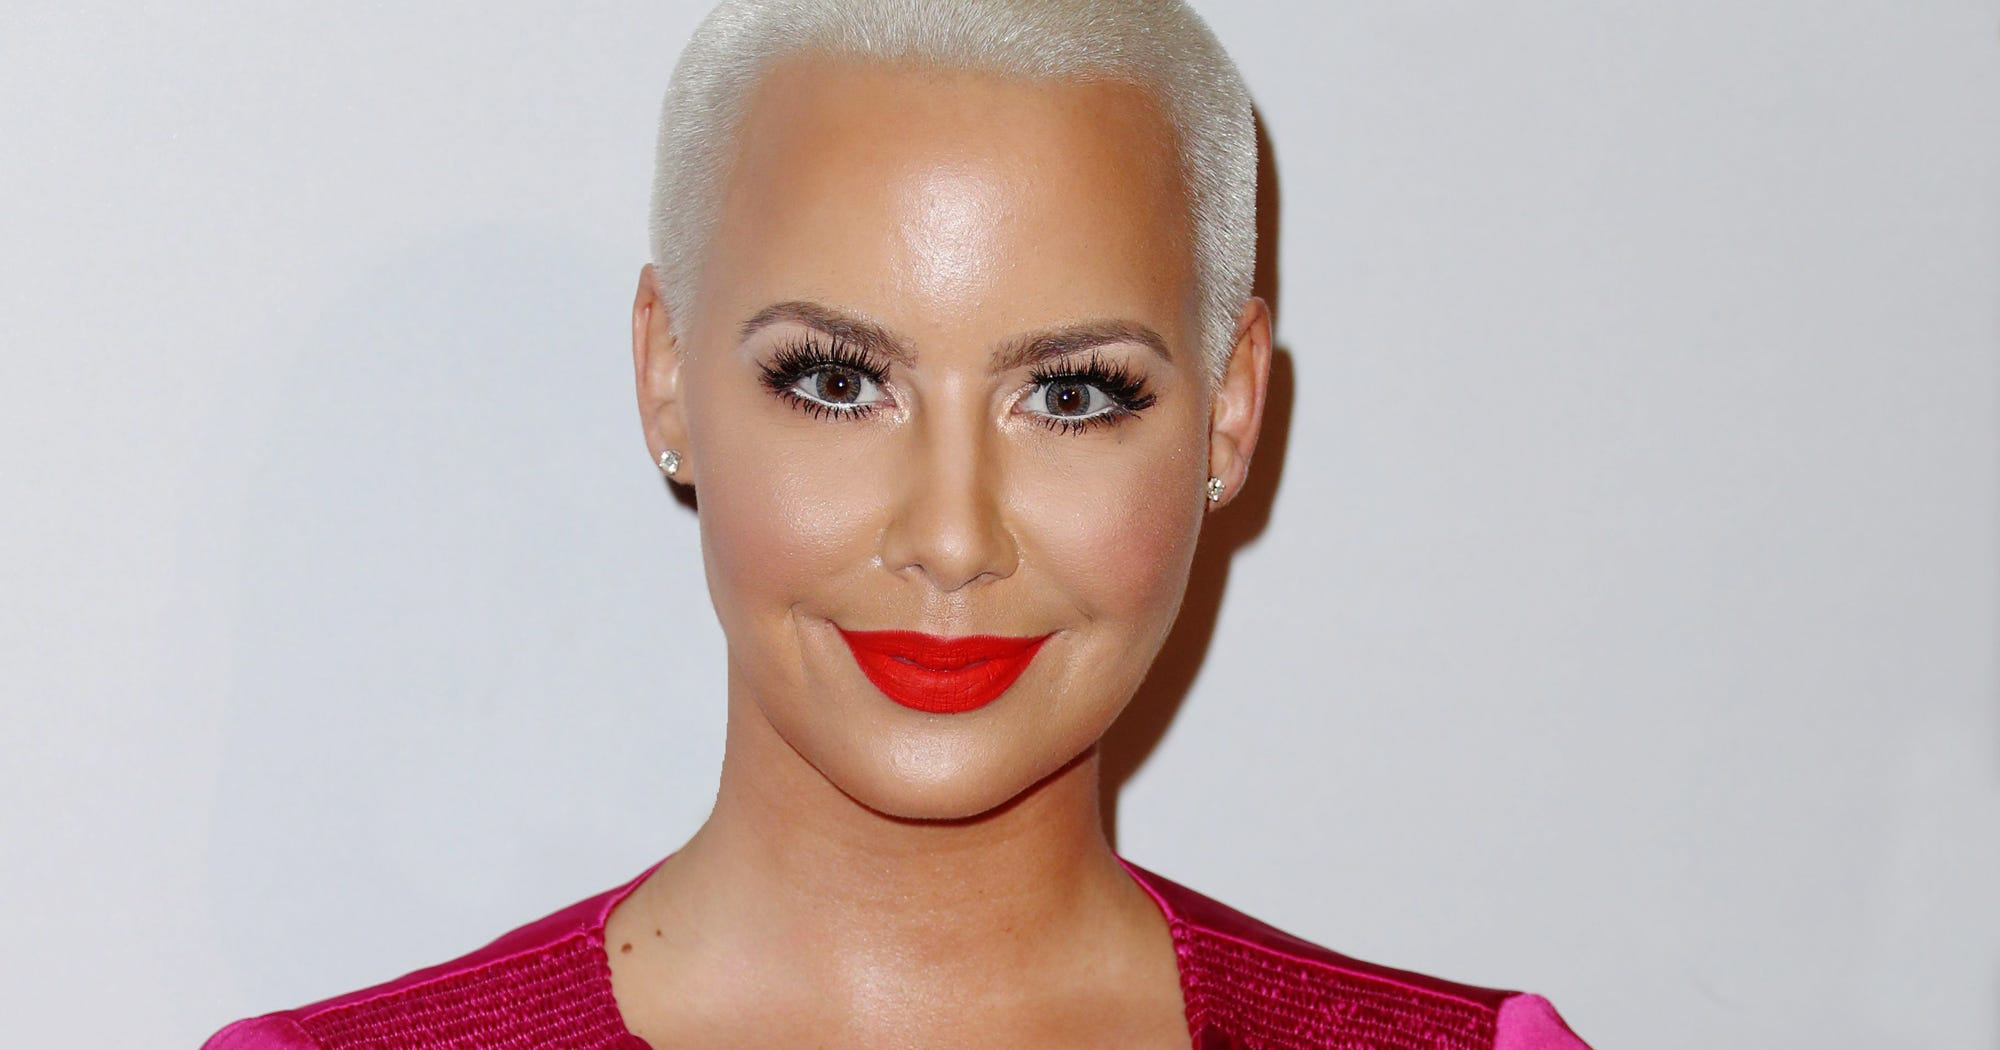 Amber Rose SEX TAPE Leaked - WATCH IT HERE!